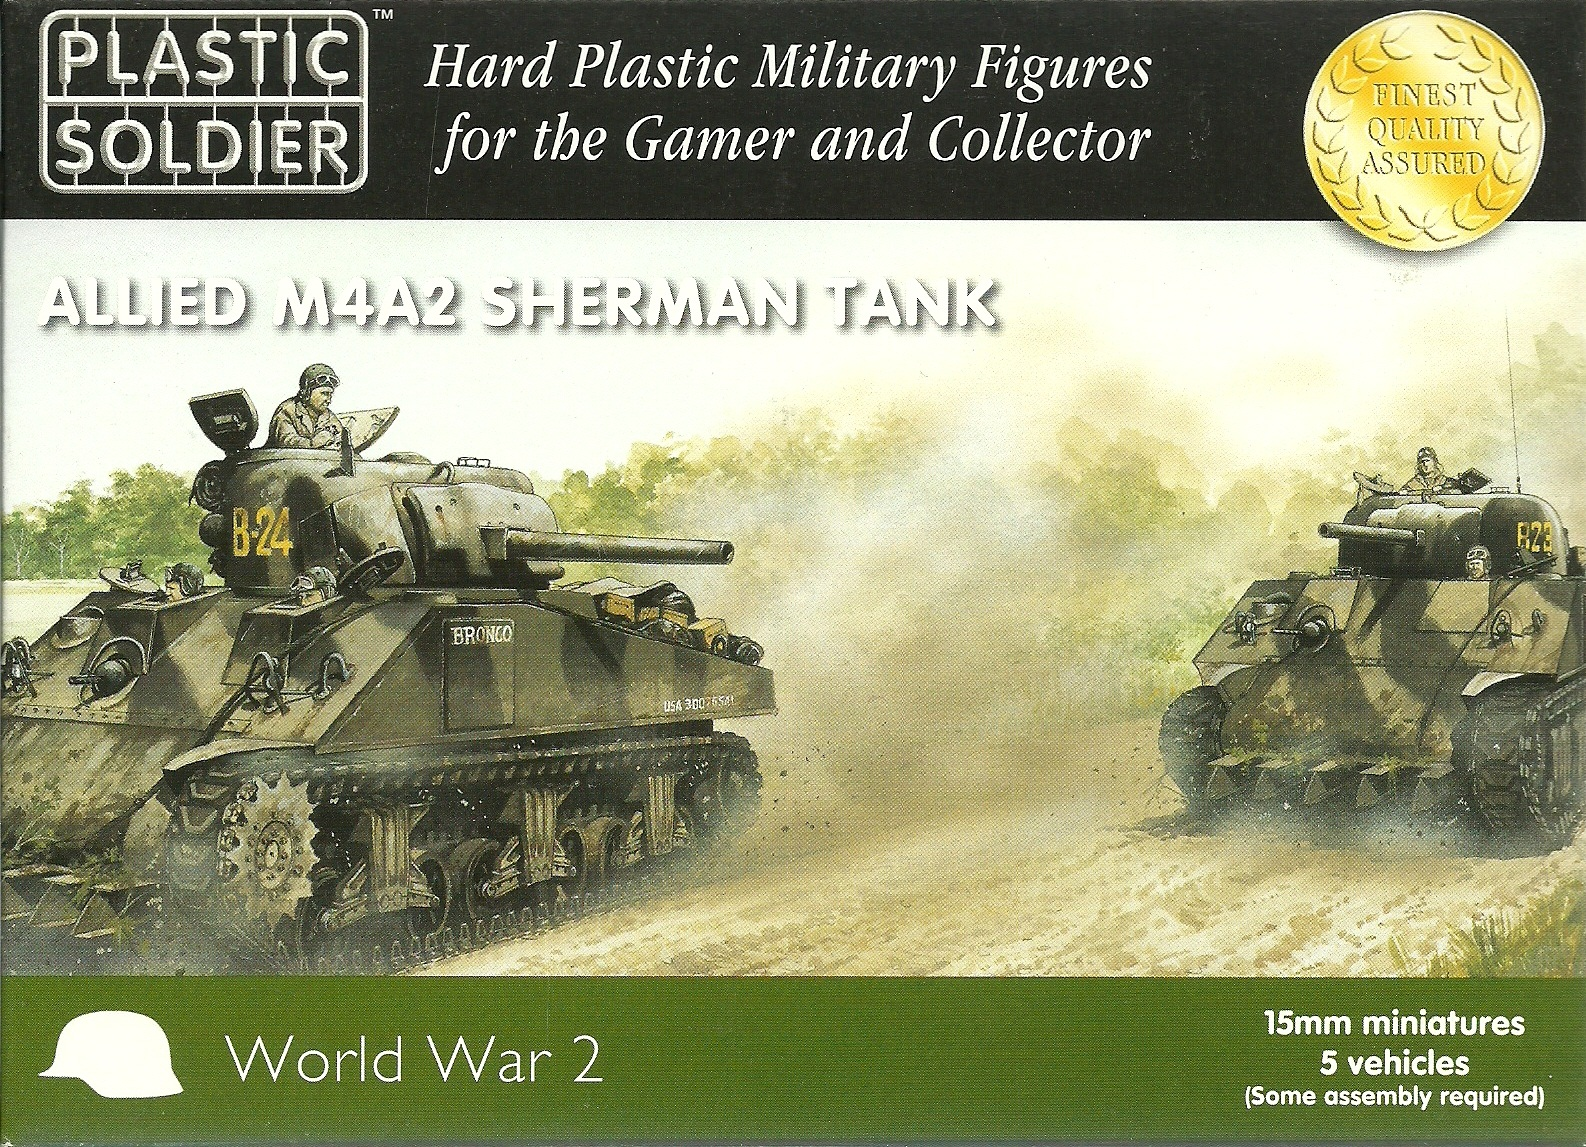 M4A2 Sherman 75mm, 76mm or 105mm (5 Fast Assembly